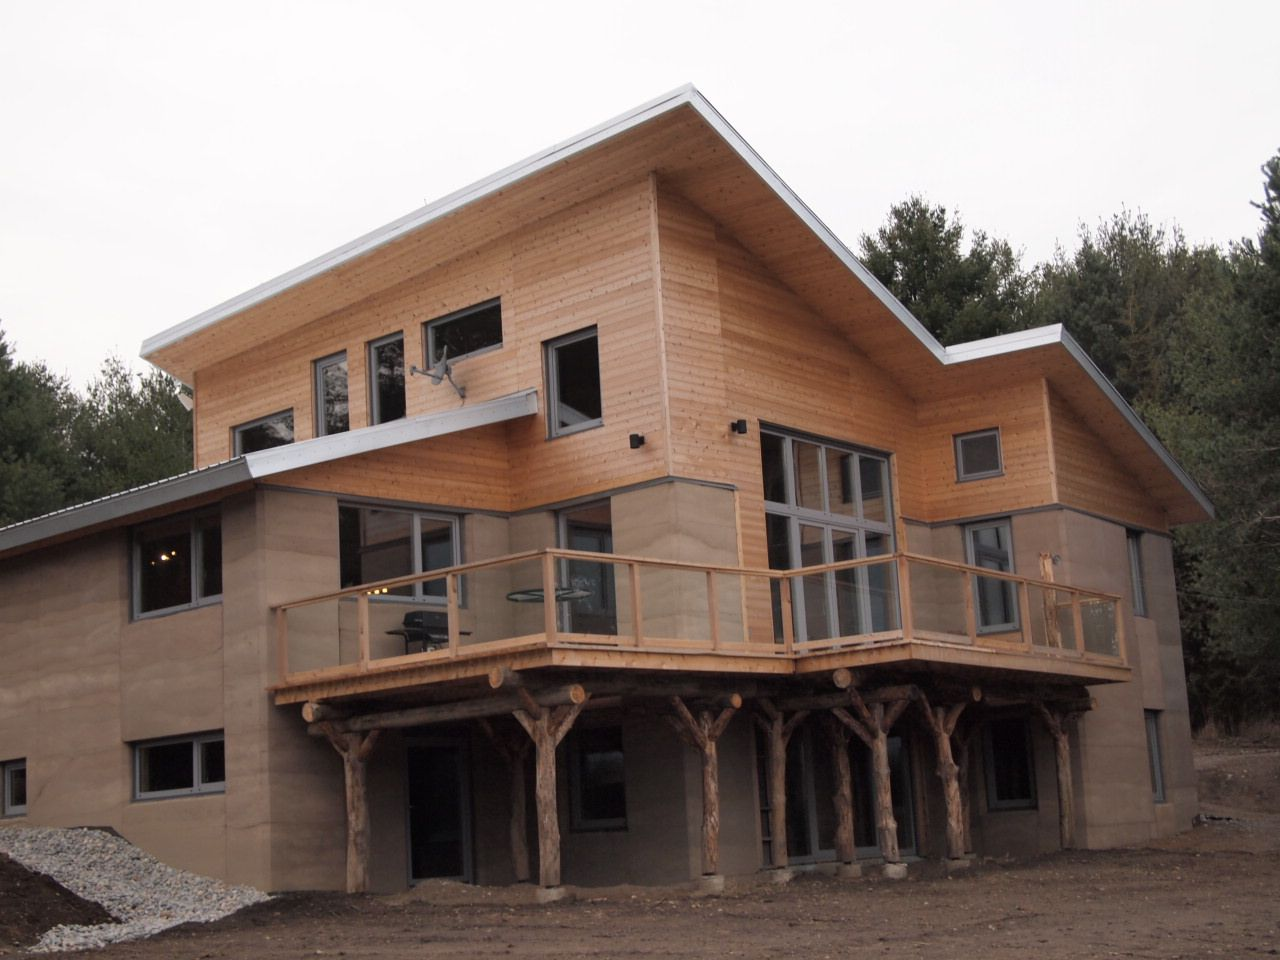 Aerecura Rammed Earth Home Revisited Alternative Homes - Earth home designs